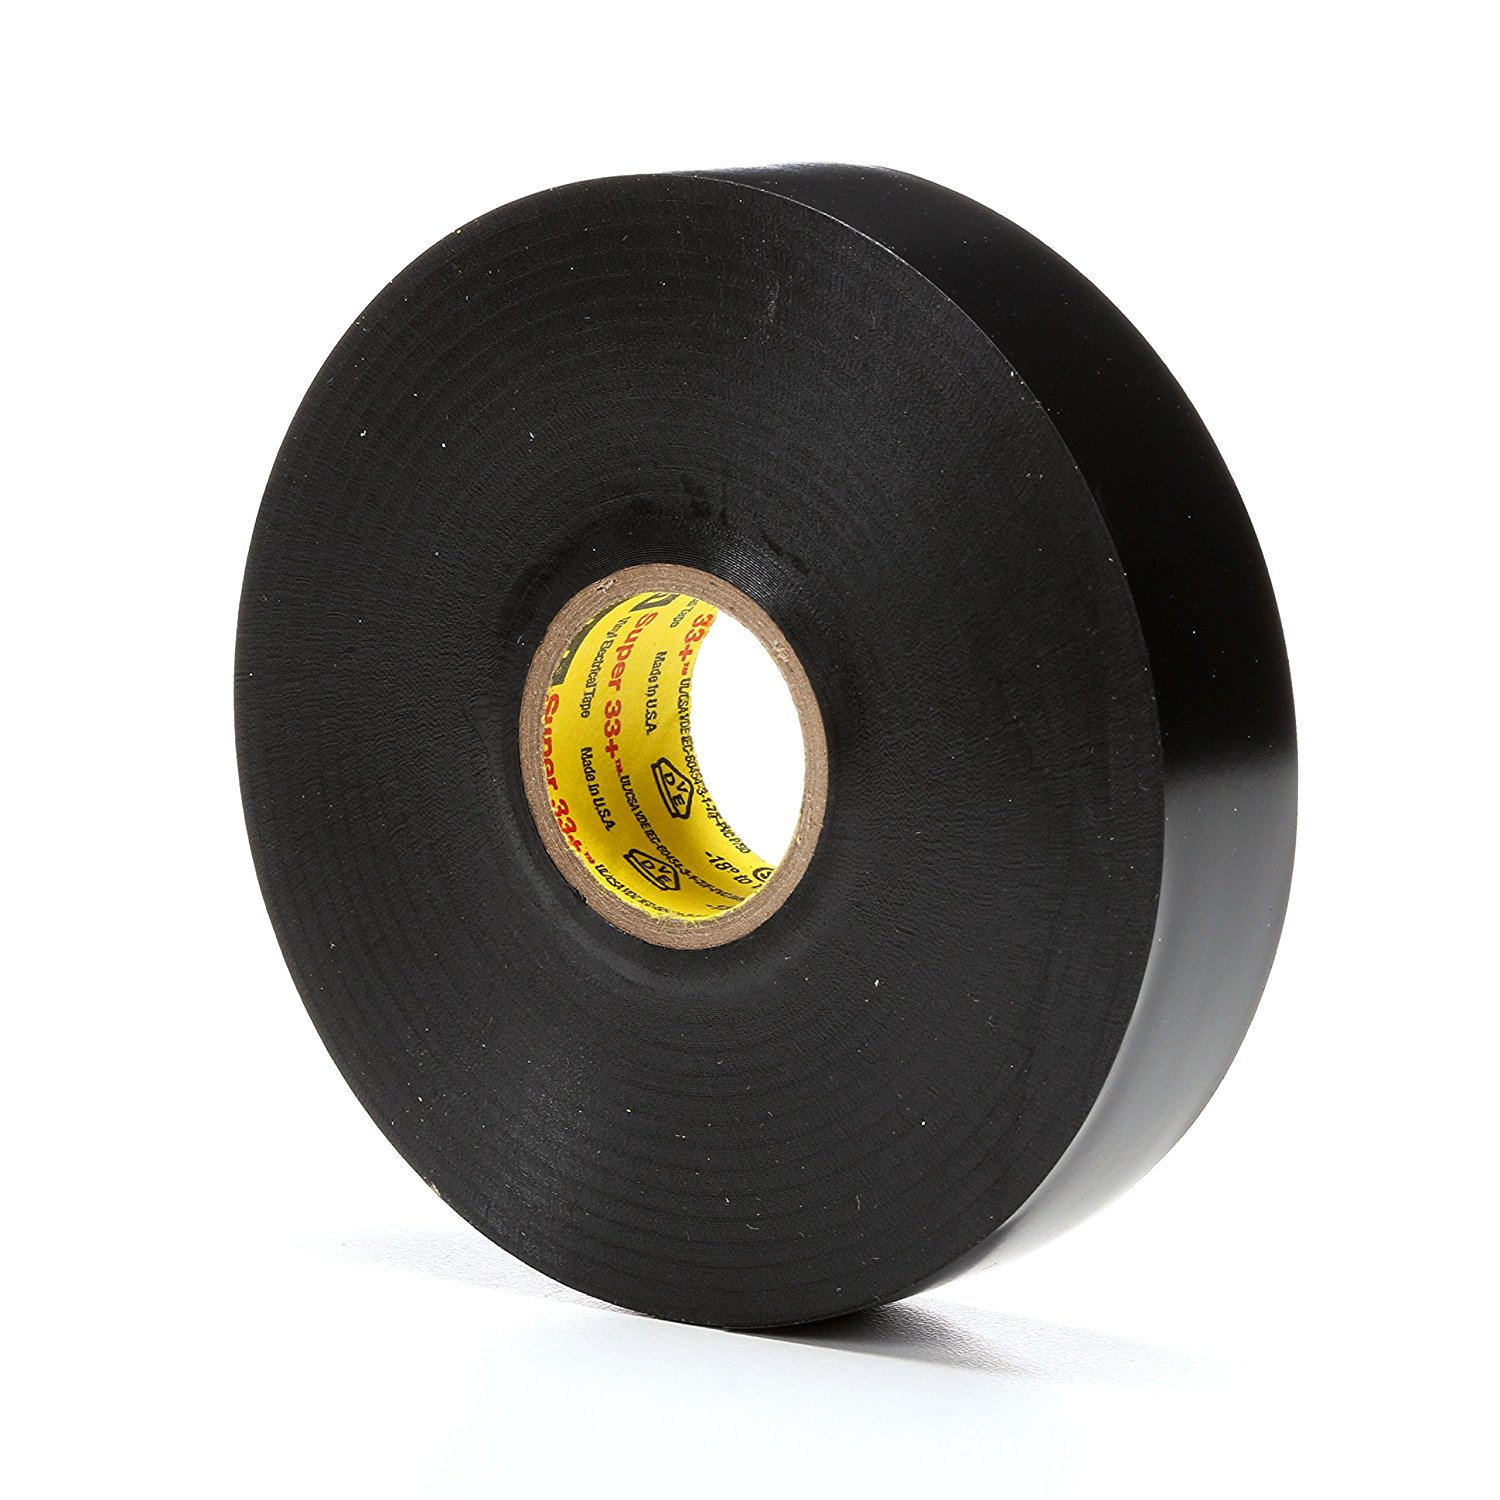 3M Black 33+ Scotch Super 33+ Tape, Black 19mm x 20m